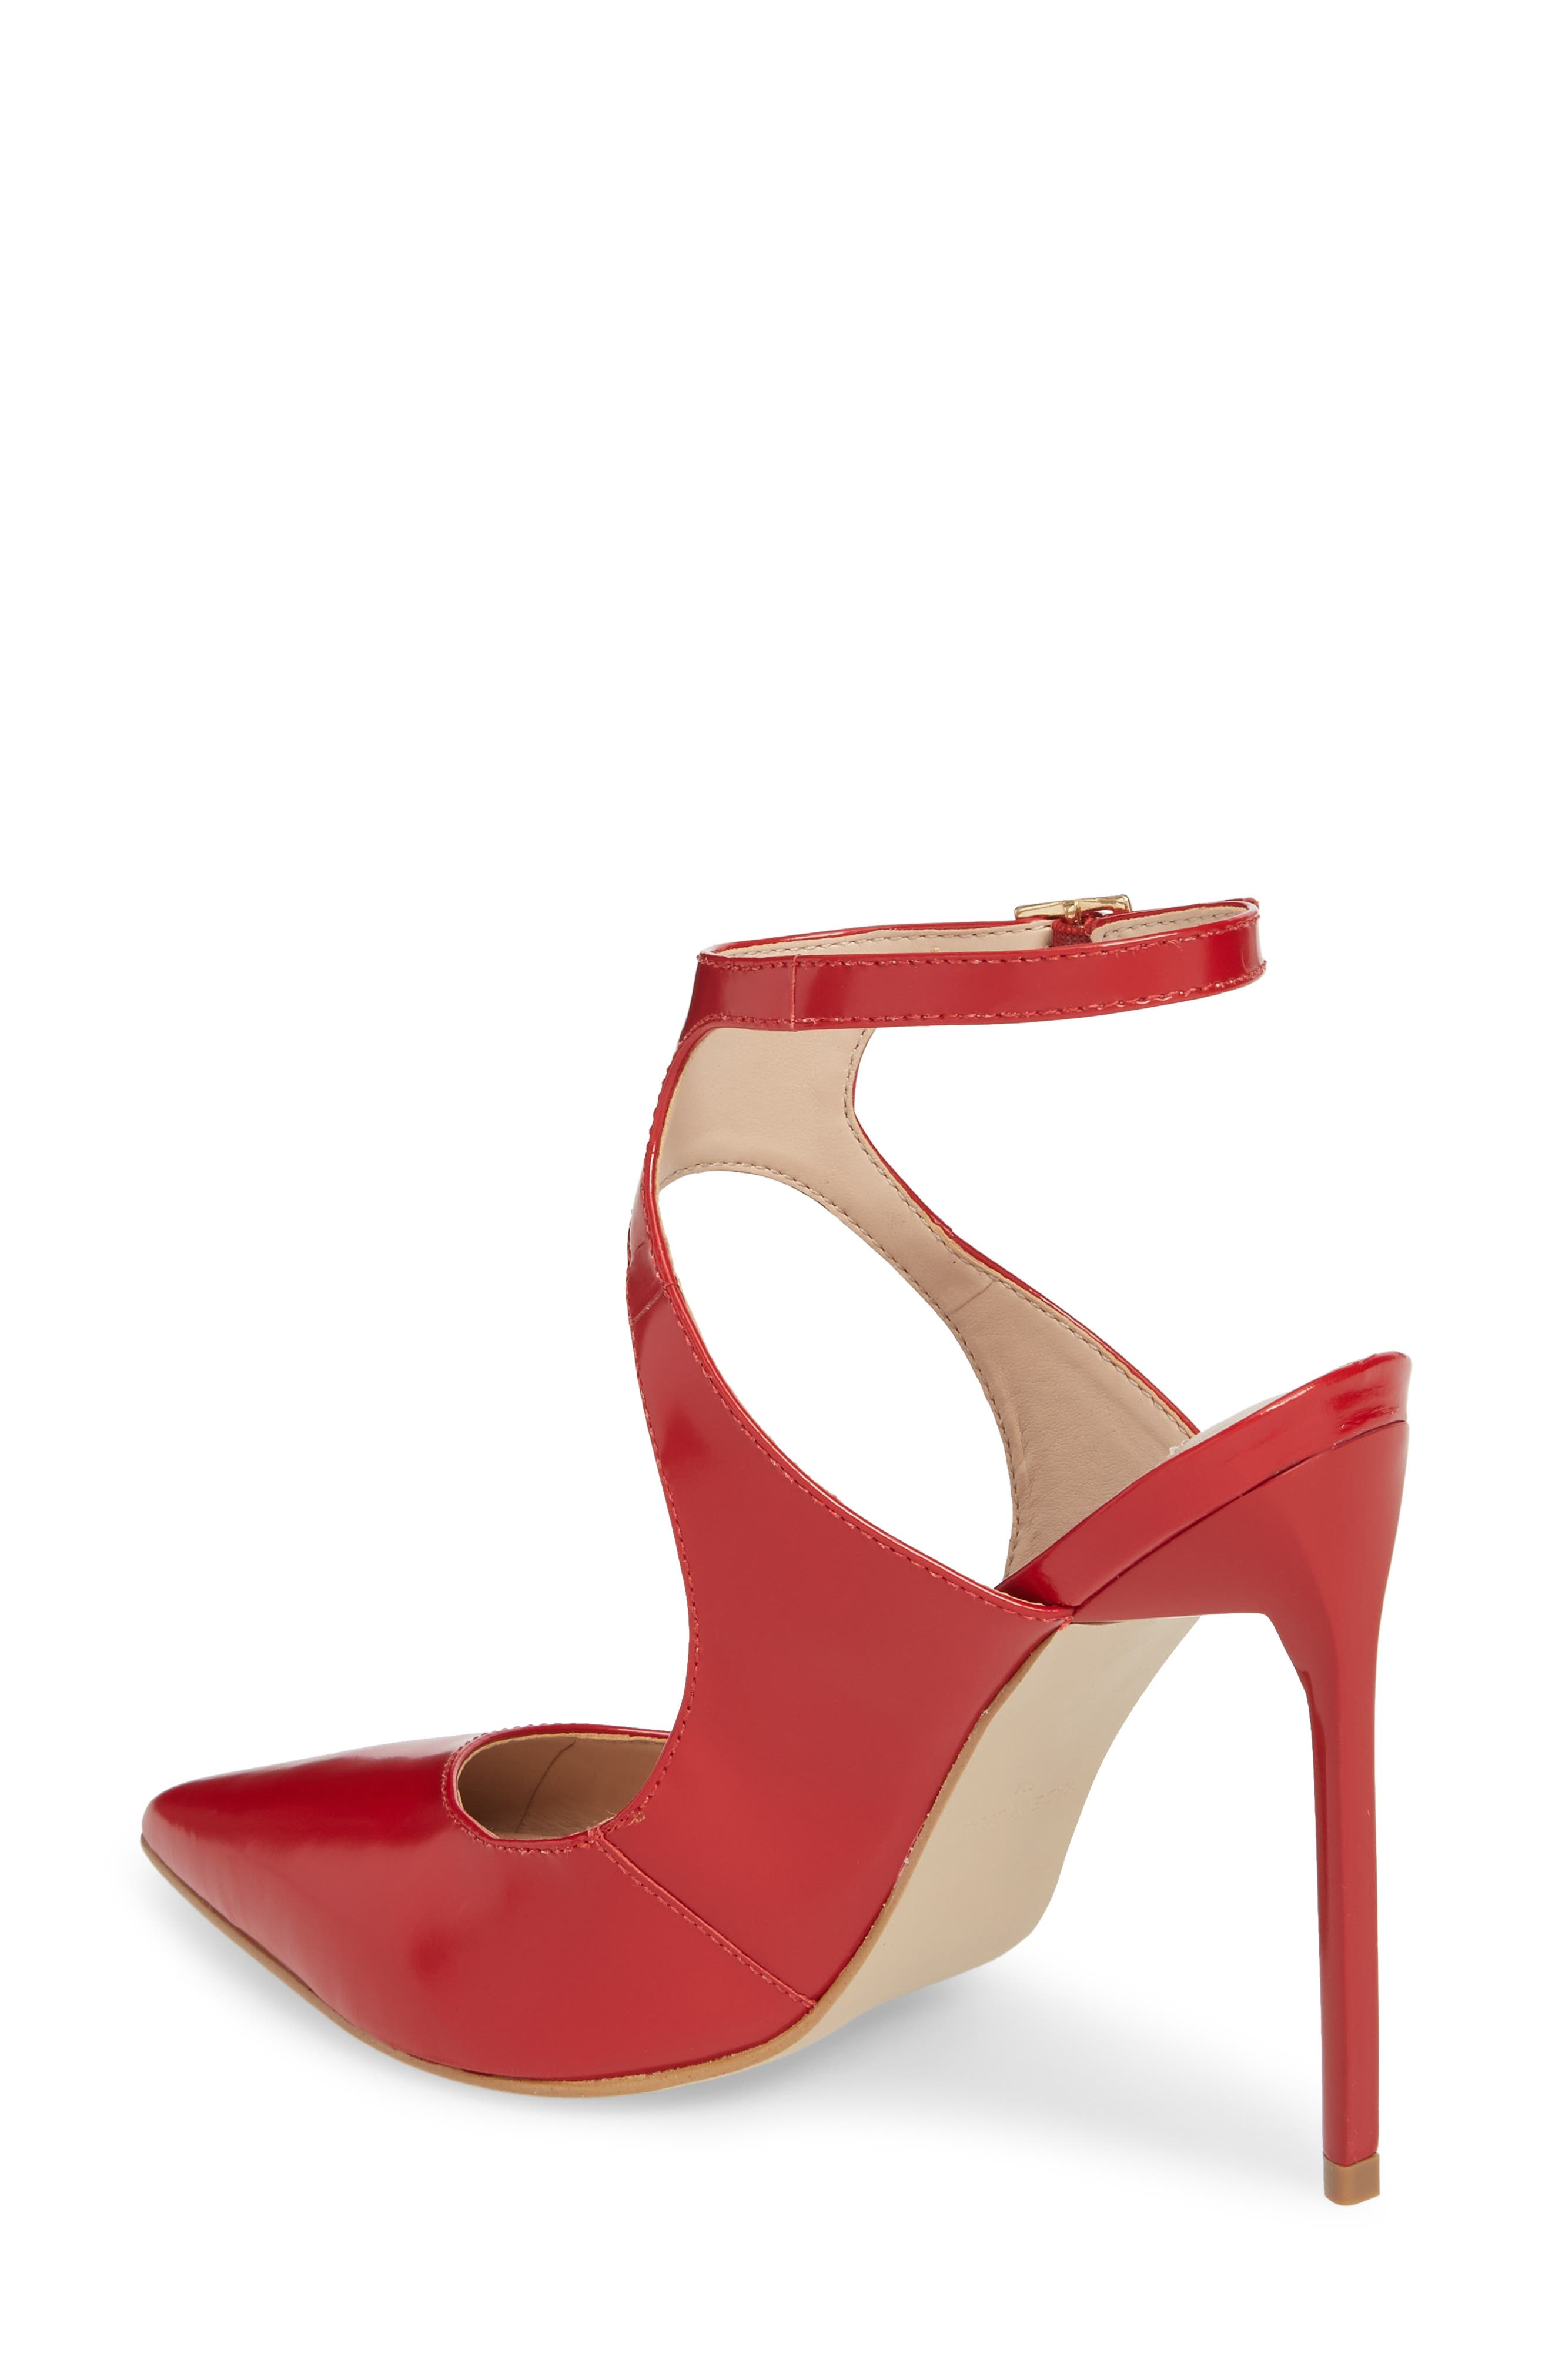 Prism Cutout Pump,                             Alternate thumbnail 6, color,